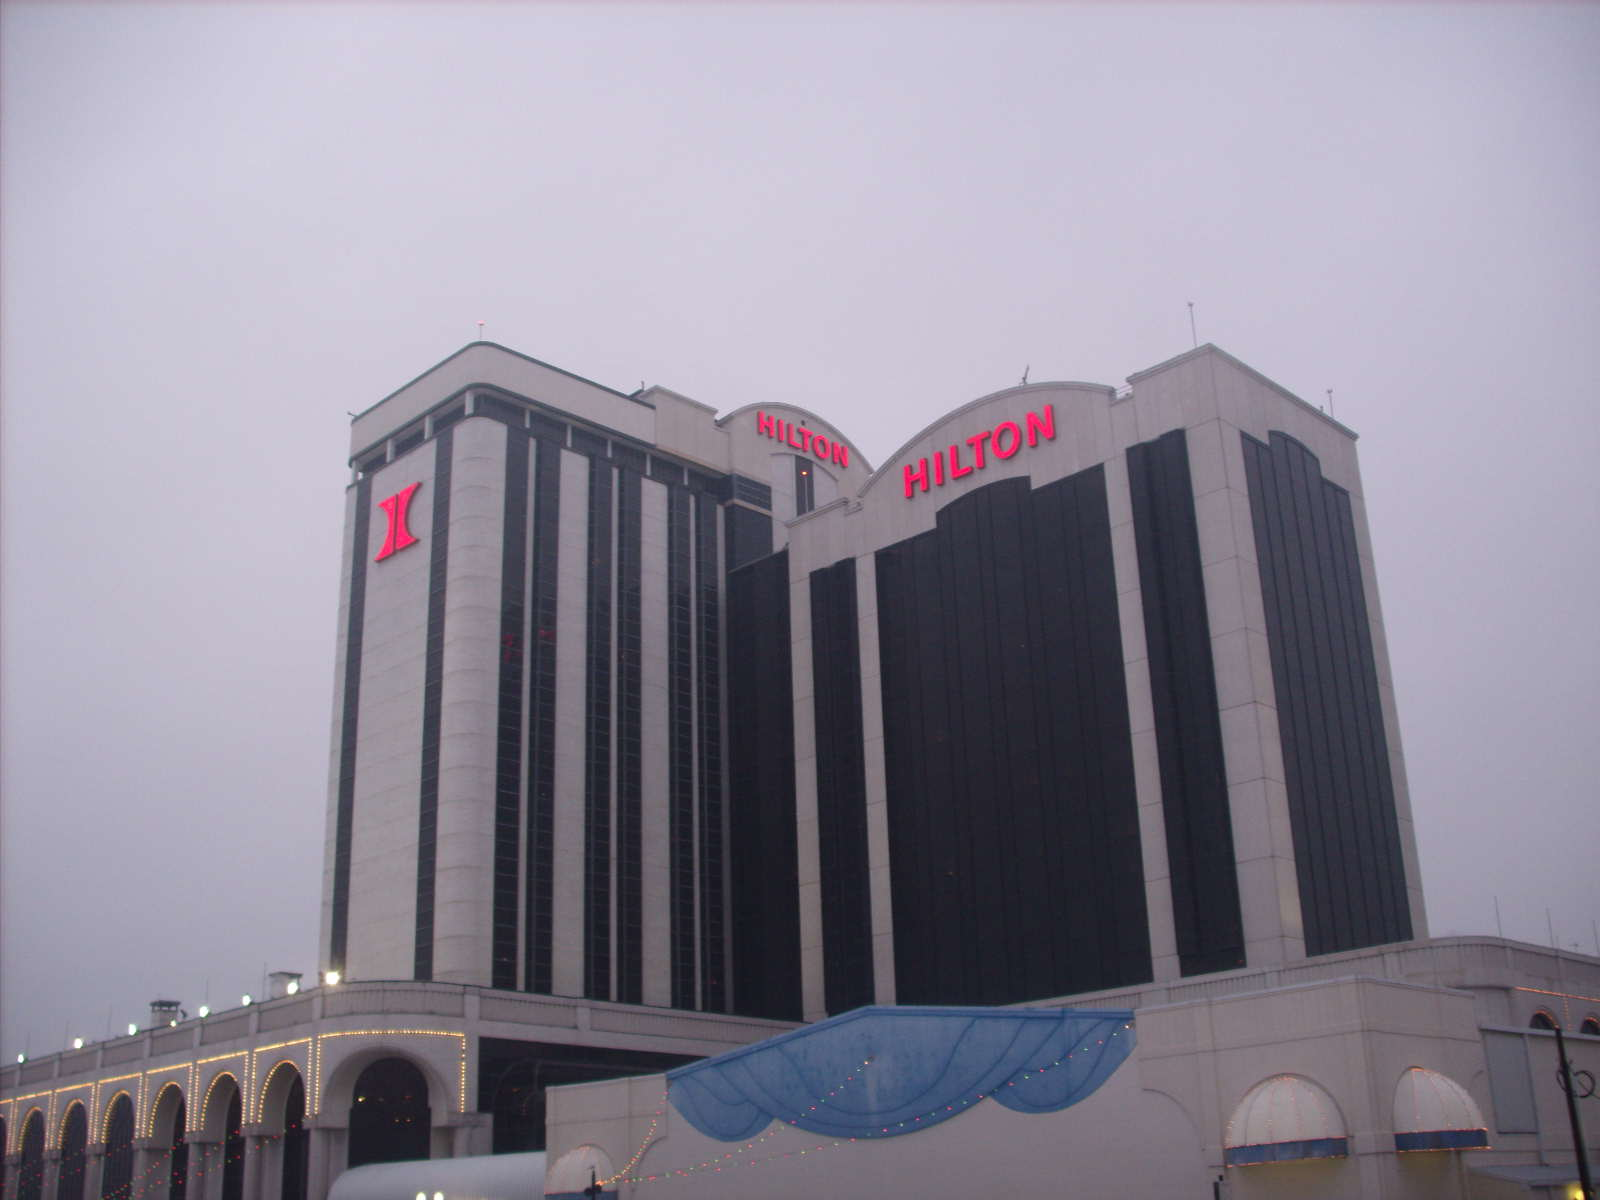 Photo of Hilton Casino Resort in Atlantic City New Jersey. A Really Big Shew - Jan. 18 thru Jan 22nd, 2009. Photo: Marion Sadge - webmaster of TomSadge.com